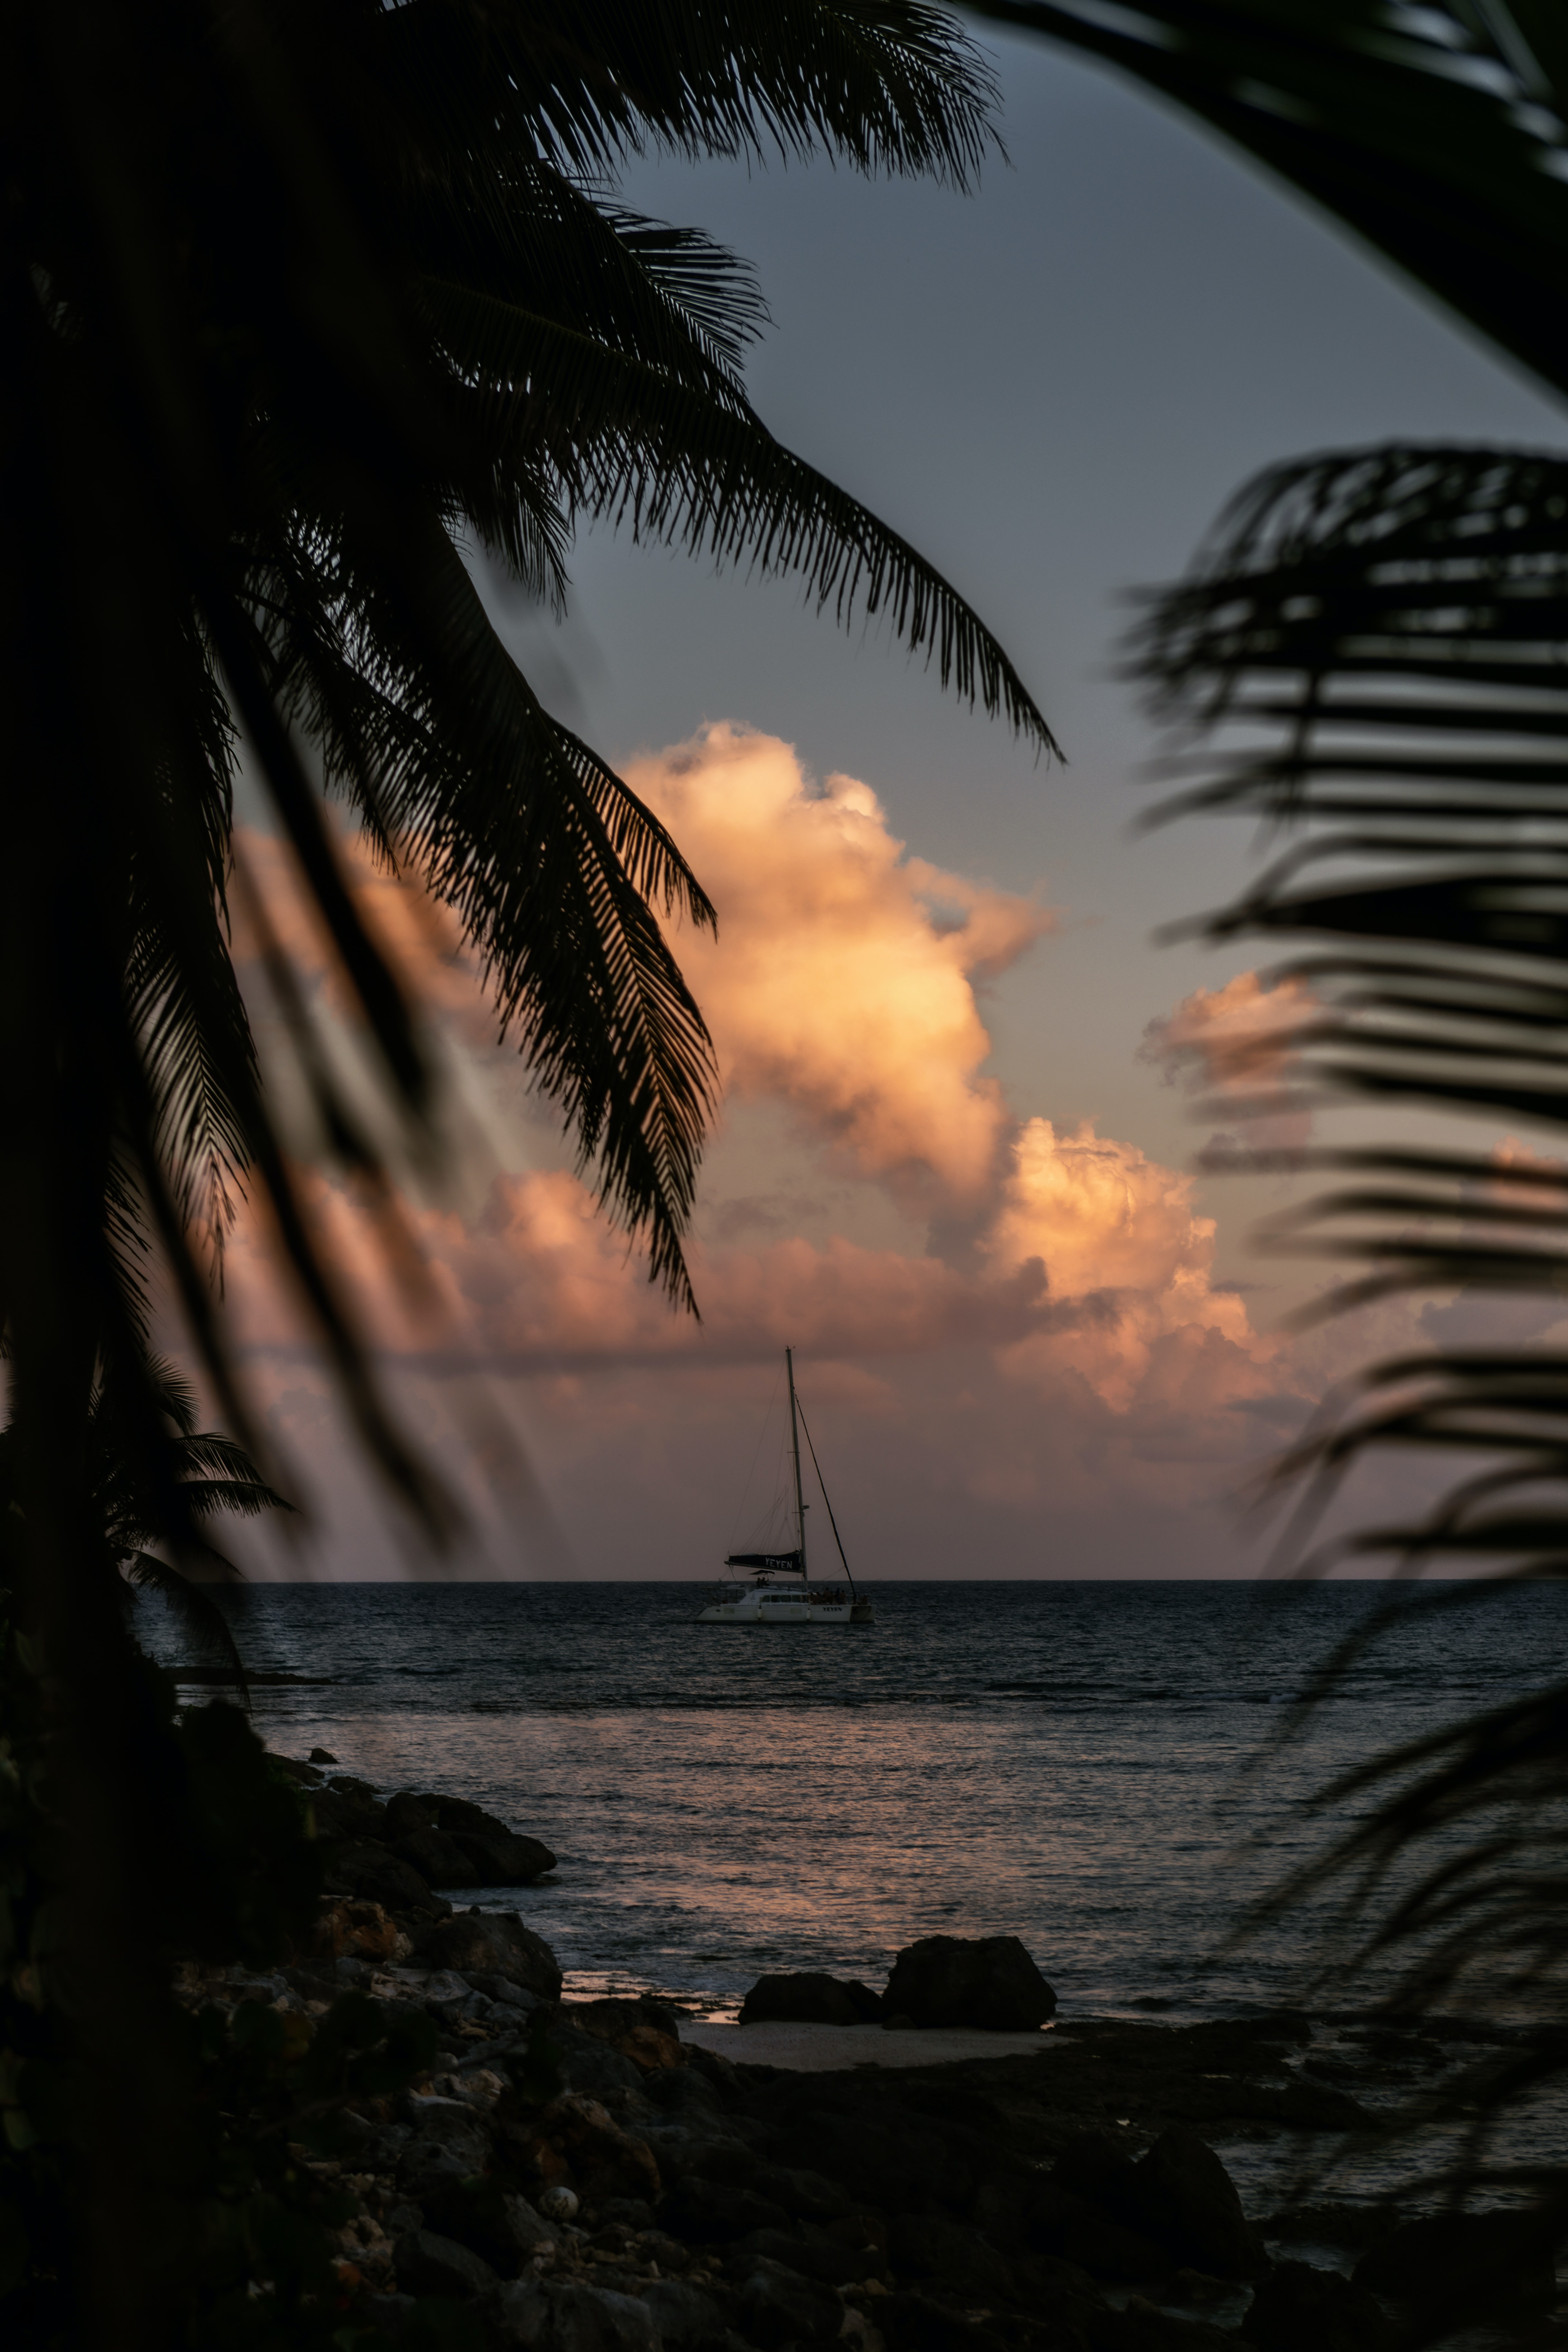 112235 download wallpaper Dark, Boat, Sea, Branches, Dusk, Twilight, Palms screensavers and pictures for free